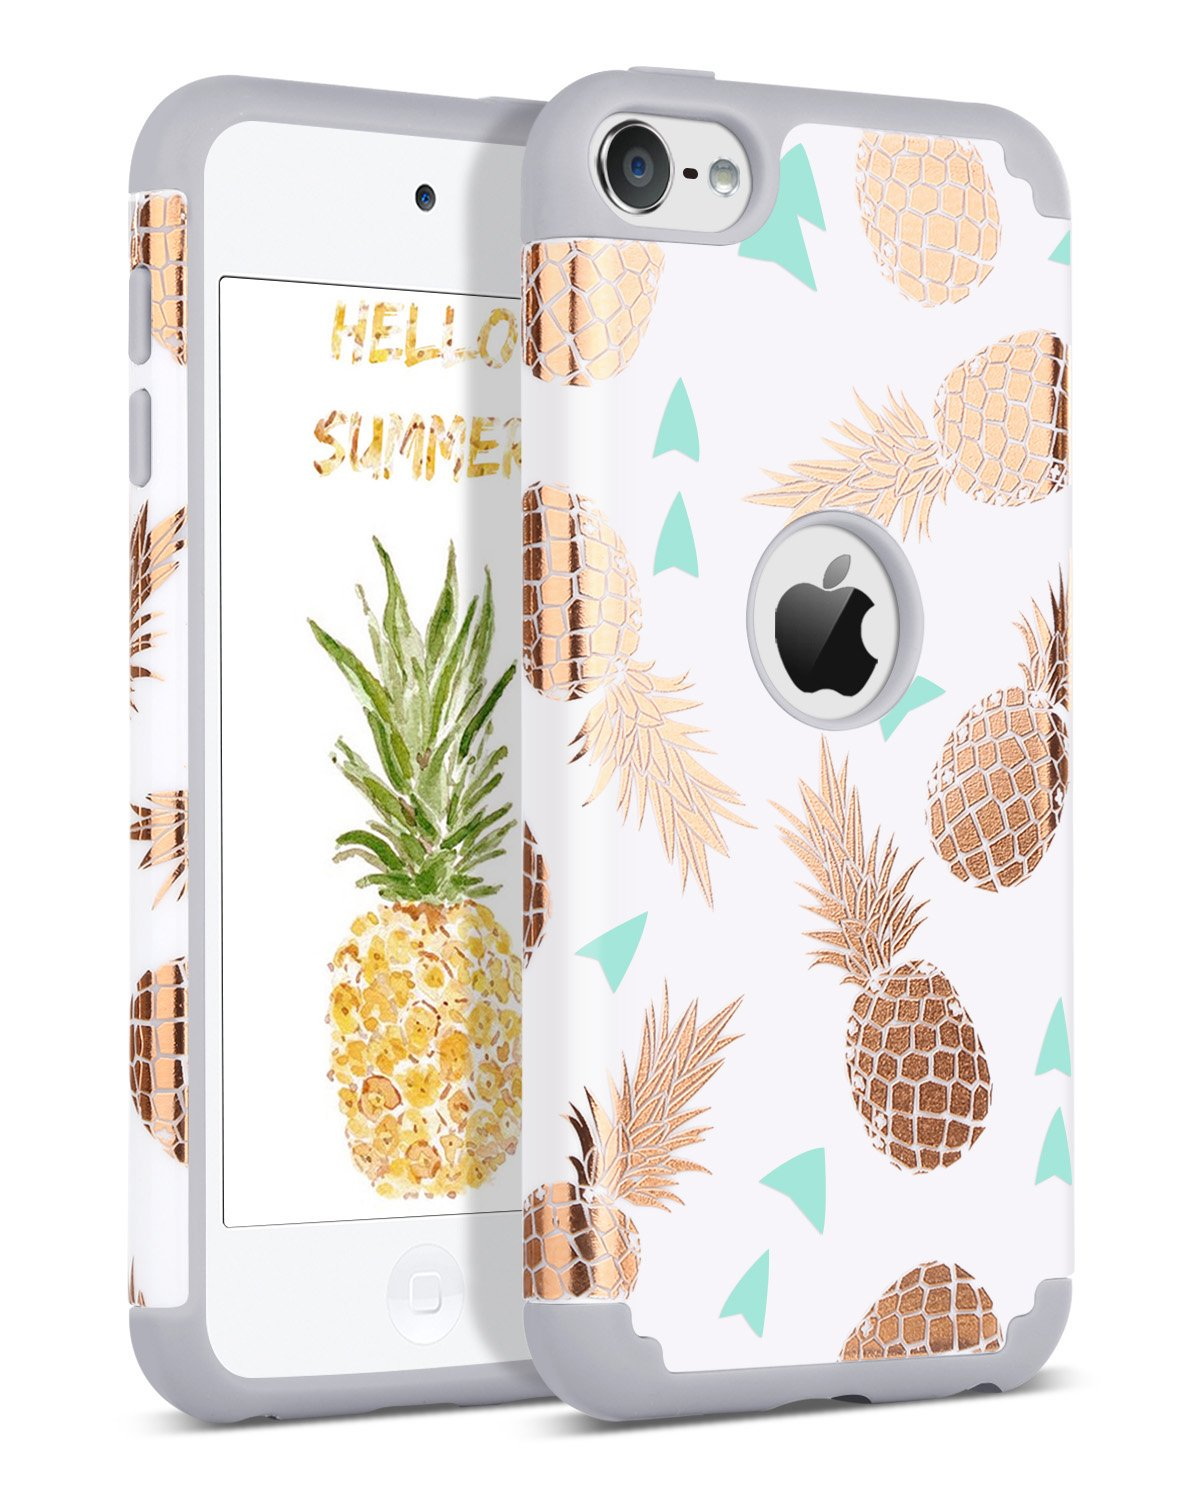 BENTOBEN iPod Touch 7 2019 Case, iPod Touch 6 Case, iPod Touch 5 Case, Hybrid Hard PC Cover Soft Silicone Bumper Pineapple Heavy Duty Protective Case ...